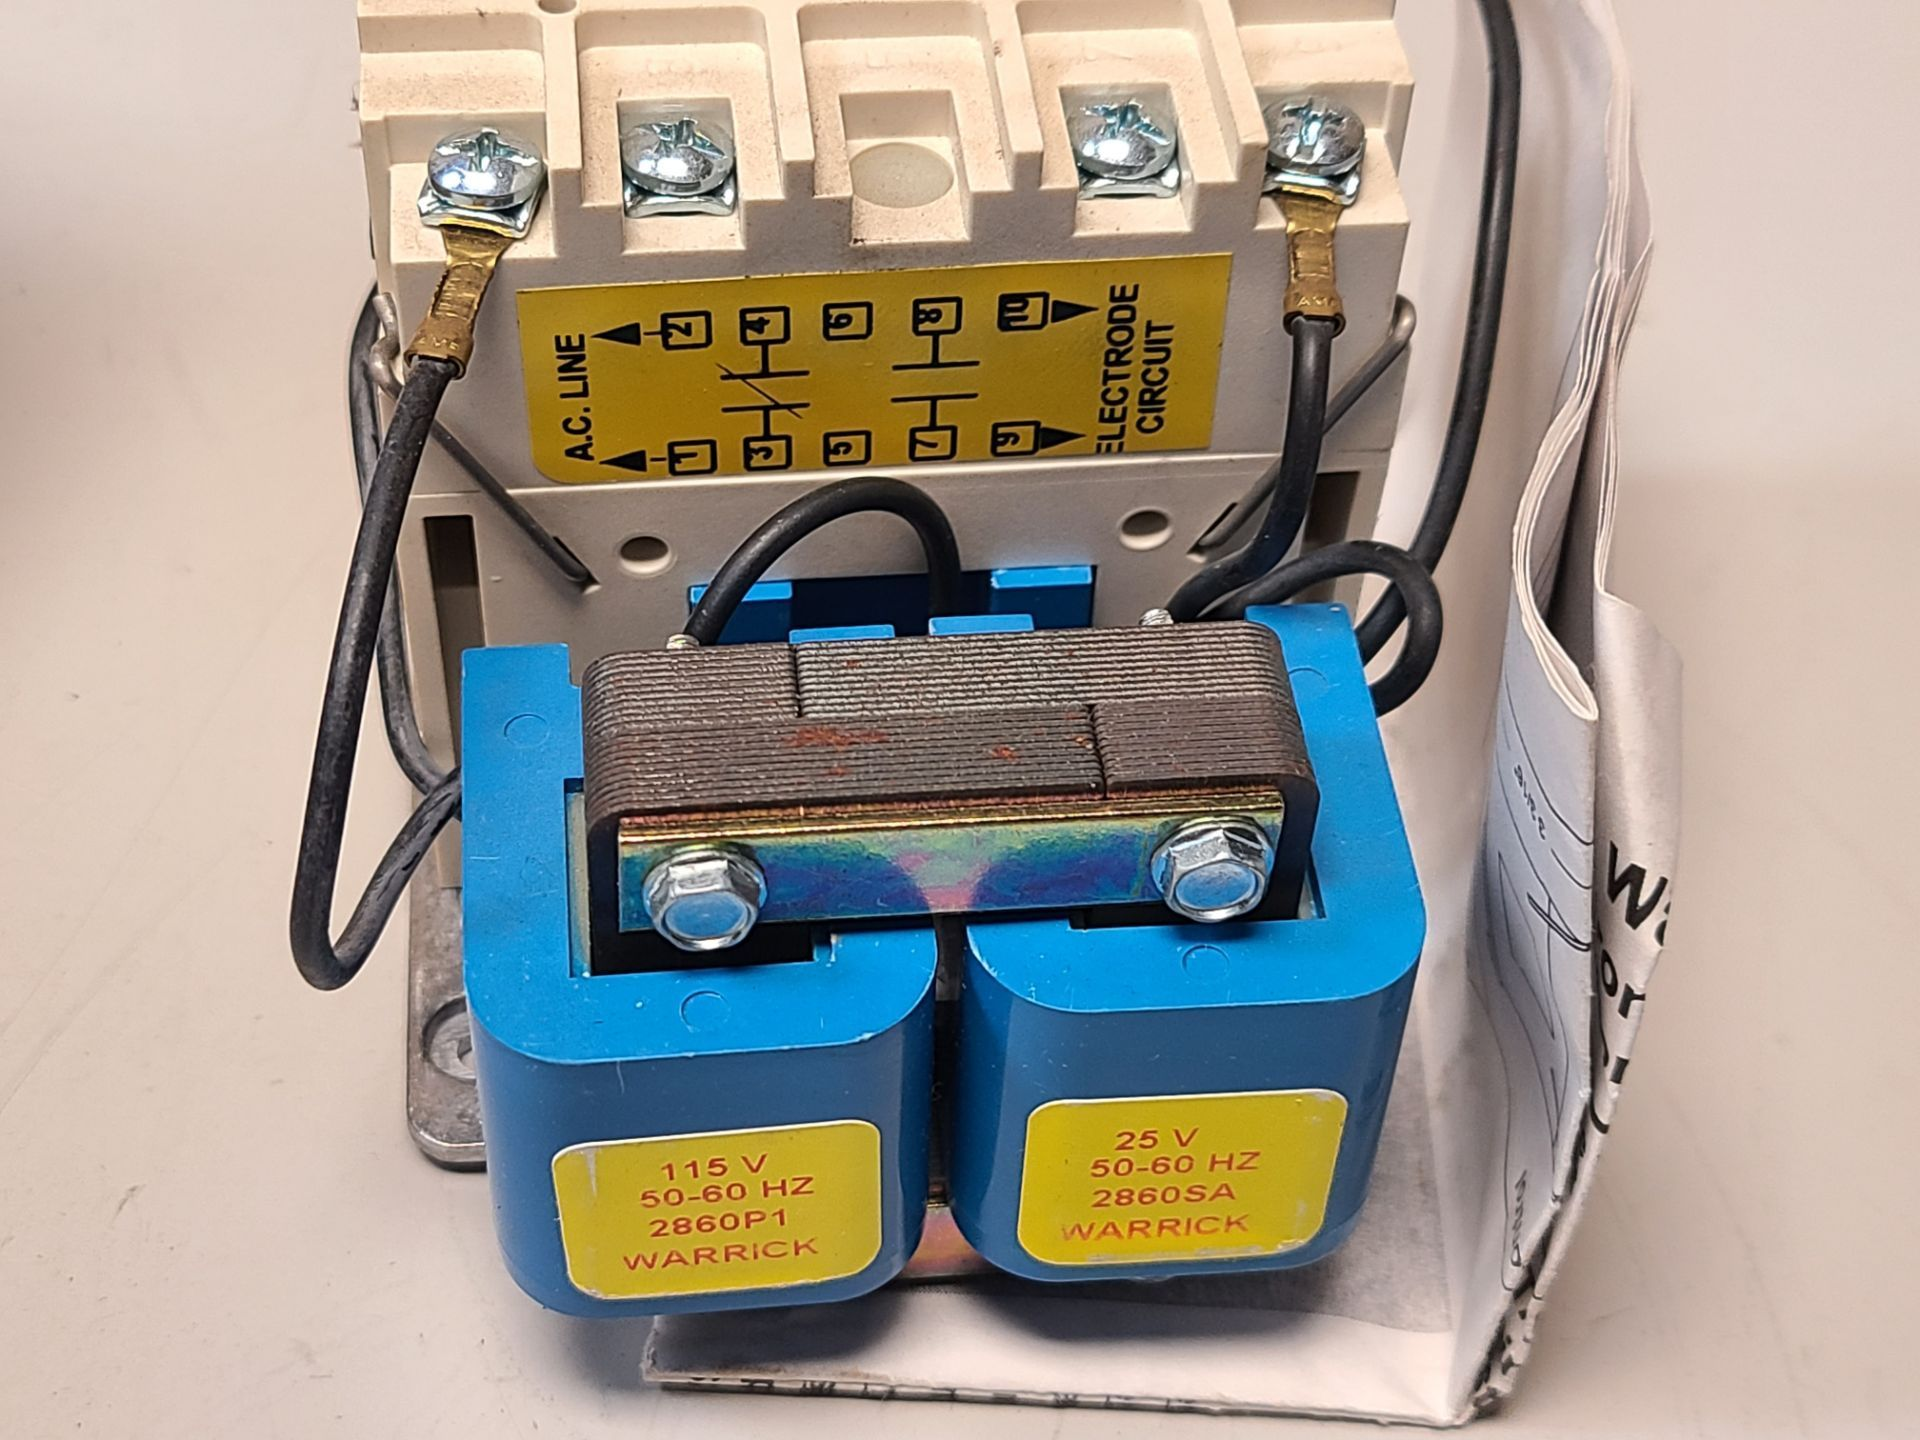 NEW WARRICK/GEMS CONTROL RELAY - Image 3 of 4